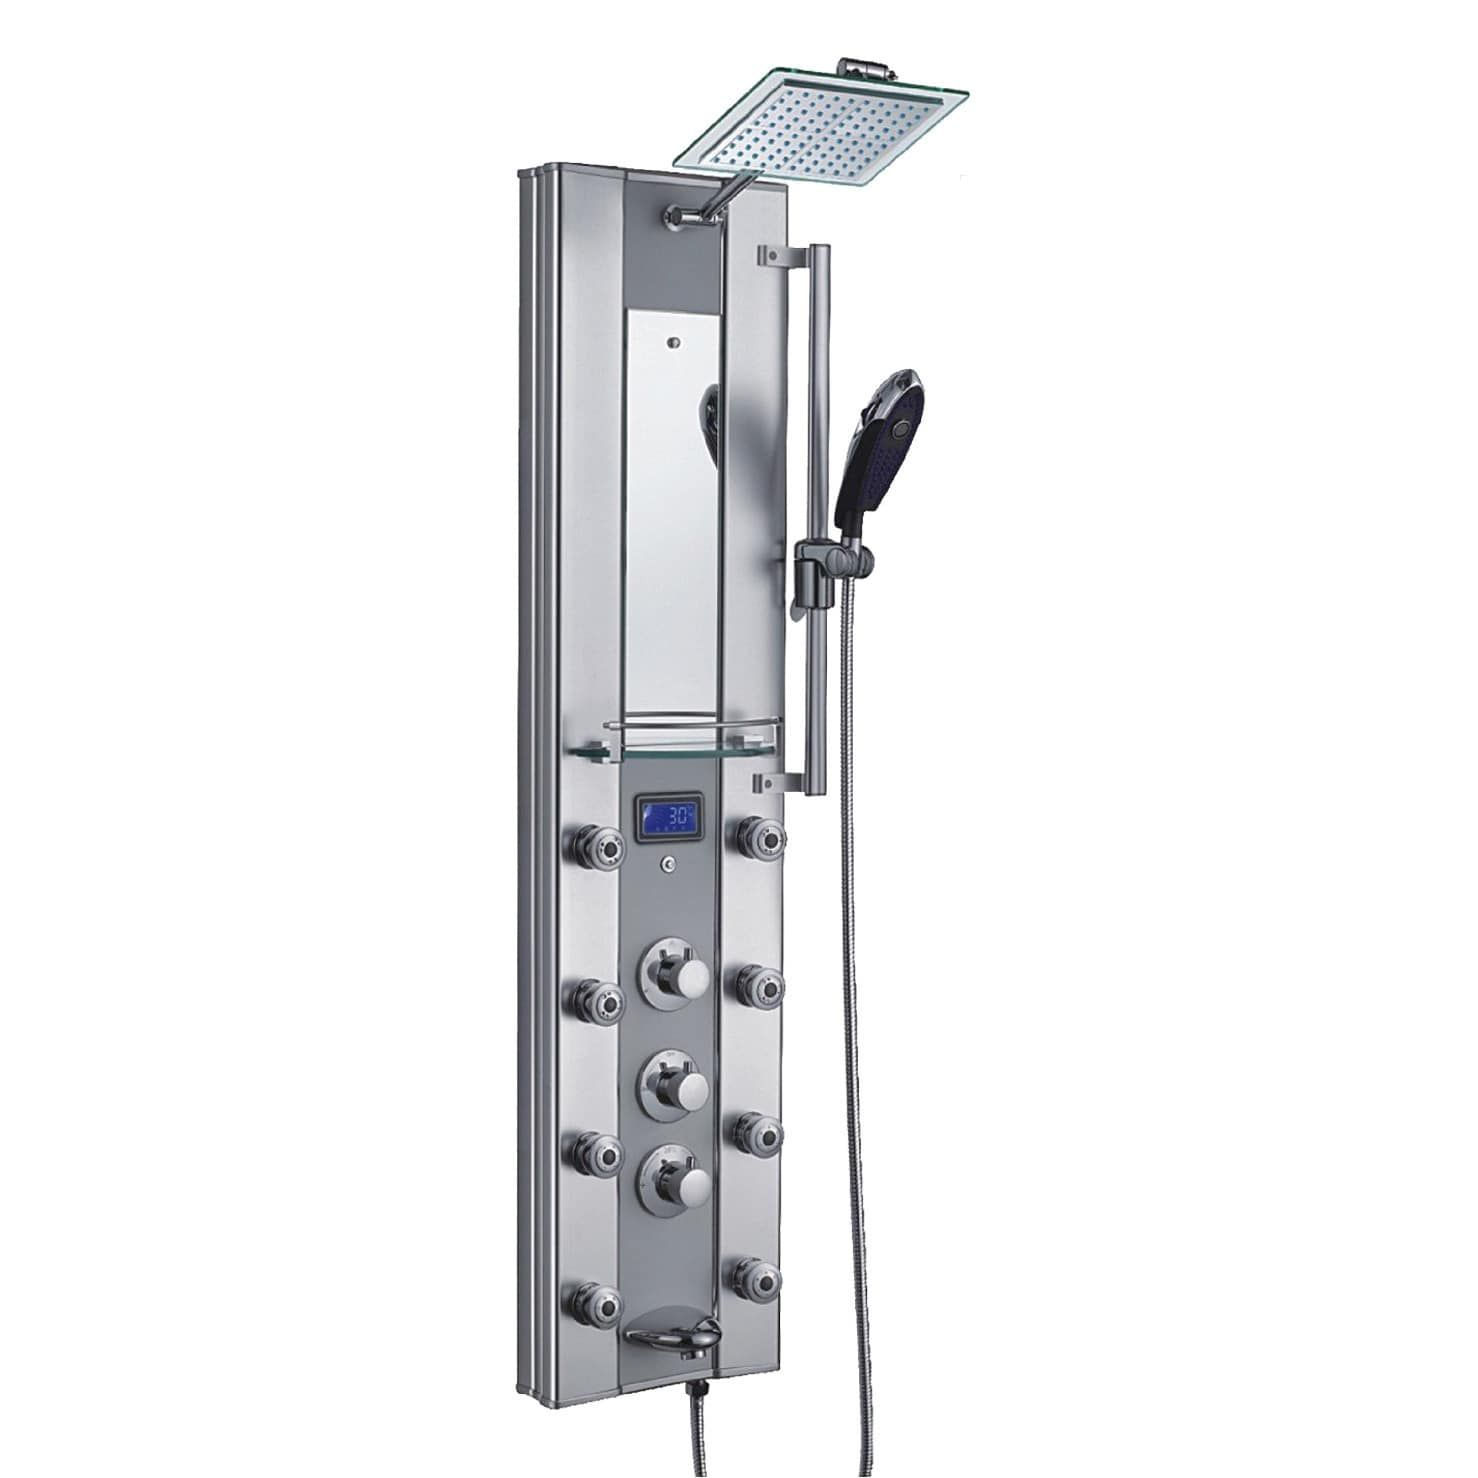 Akdy 51-inch Aluminum (Silver) Shower Panel with Tower Massage Spa ...